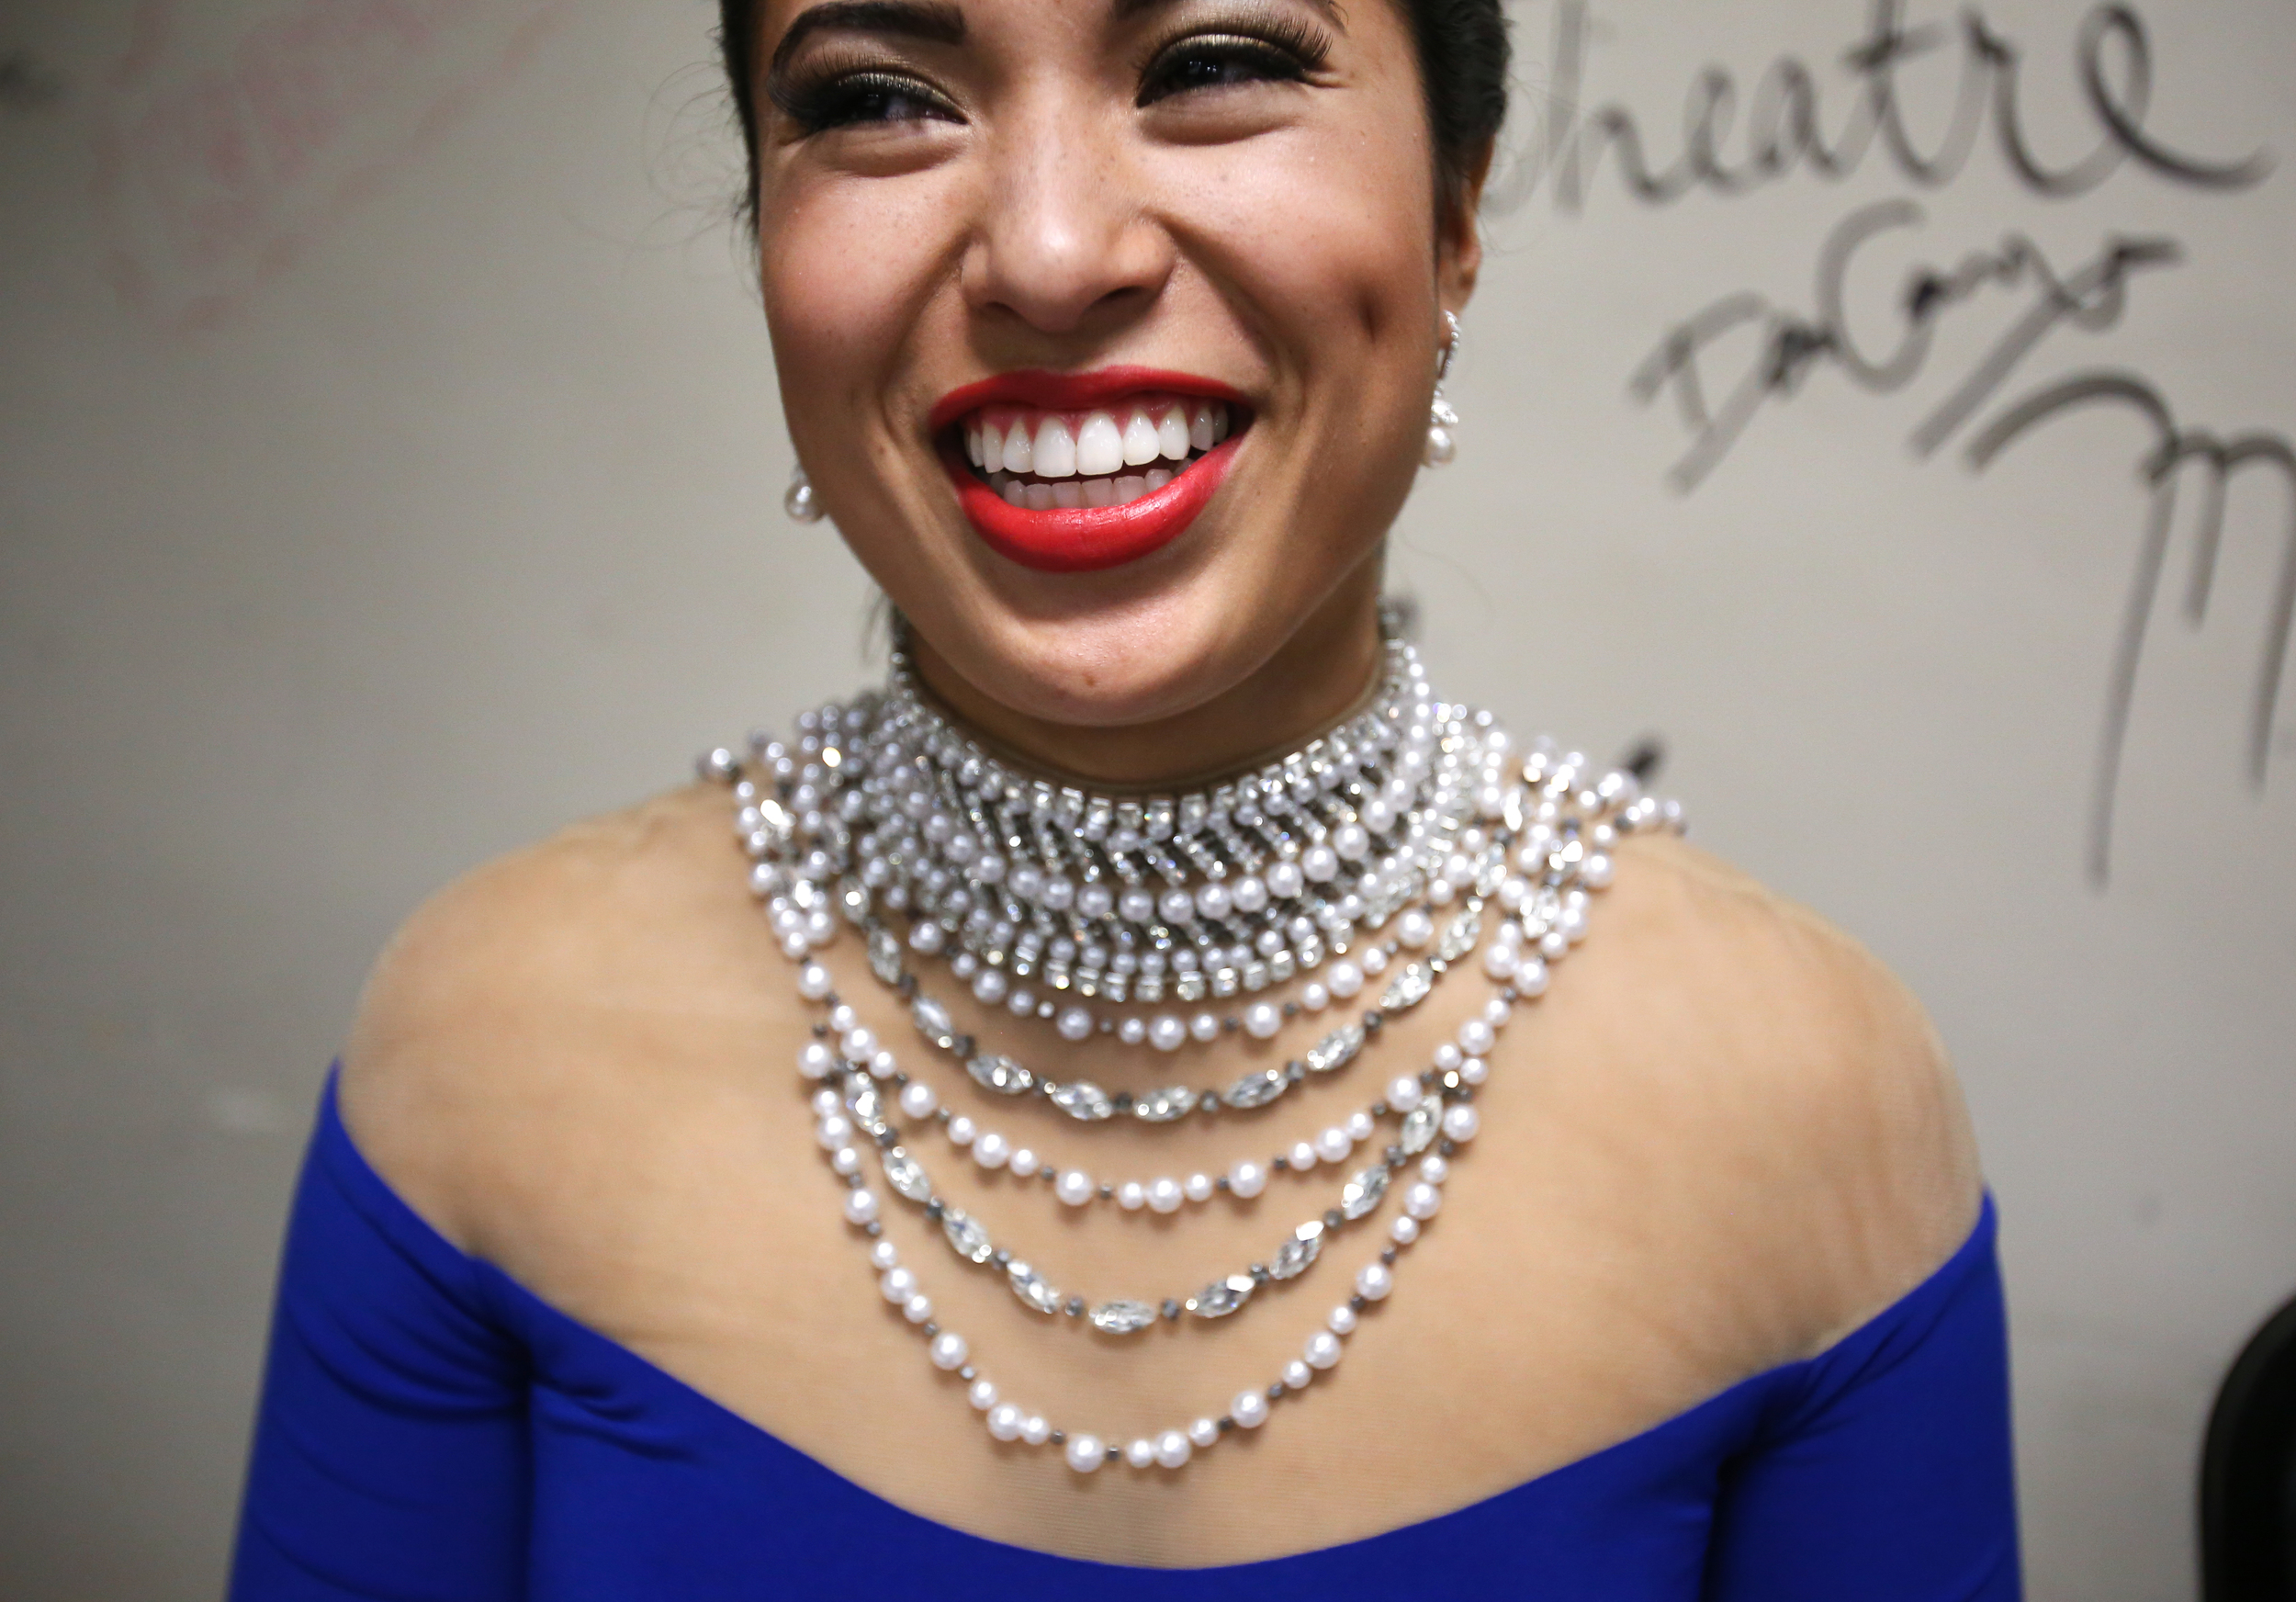 Miss Saginaw County Danielle Purtell smiles backstage as she chats with other contestants during the second night of the 2015 Miss Michigan Scholarship Pageant at the Frauenthal Center for the Performing Arts in Muskegon, Mich. on Friday, June 19, 2015.